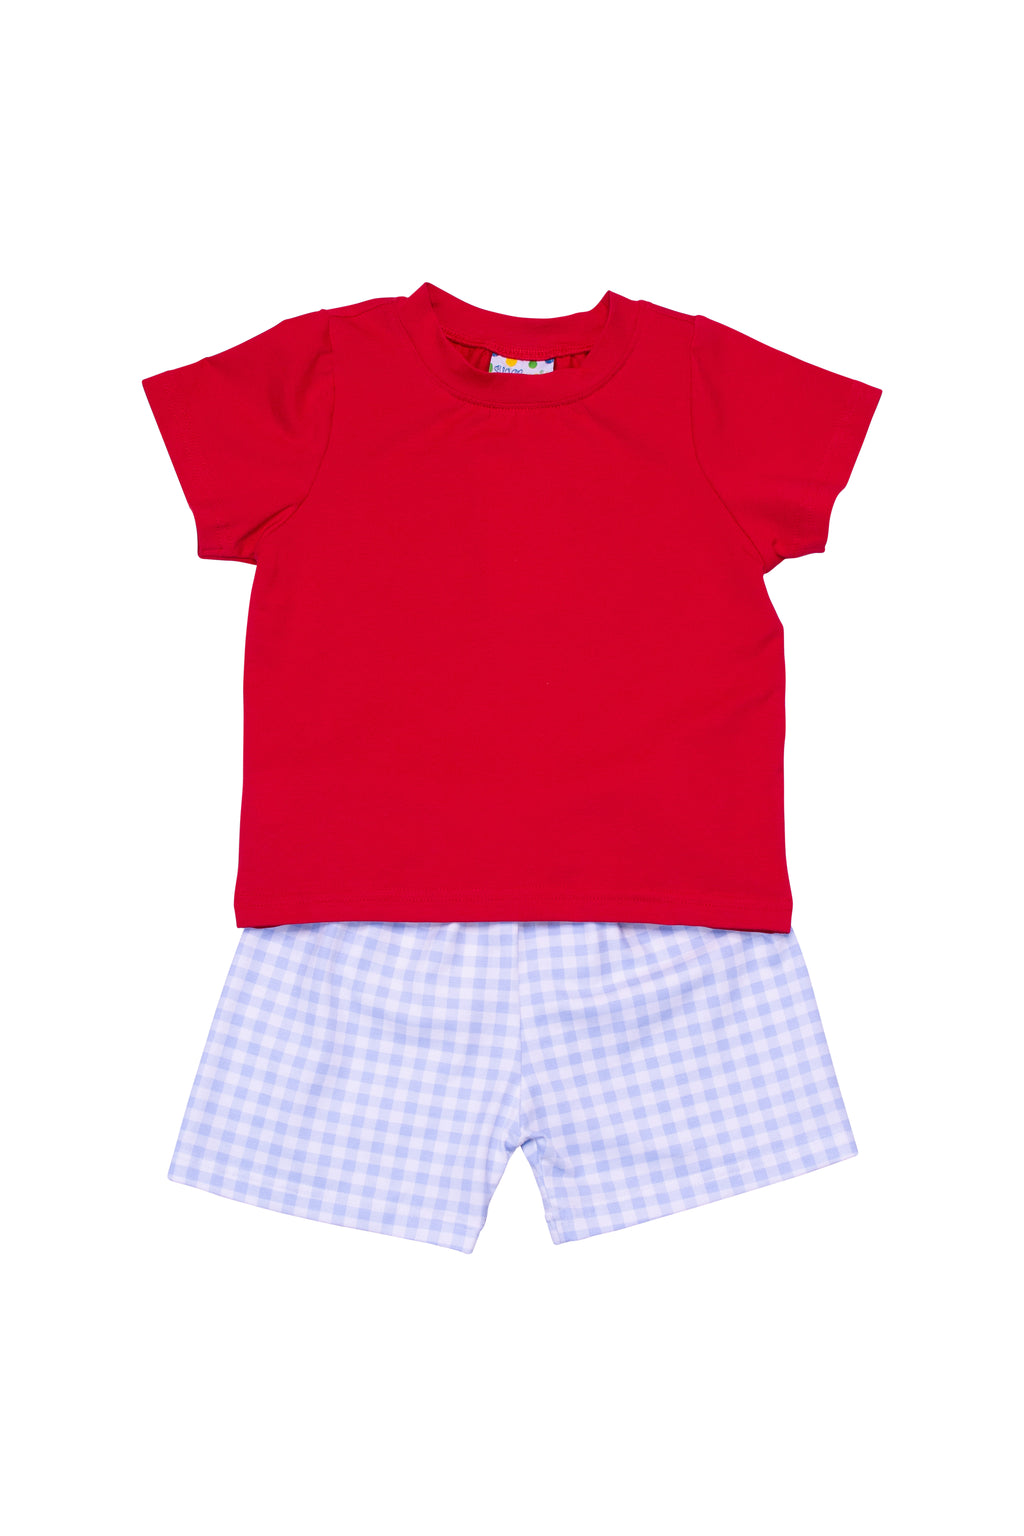 Boys Knit Red/Blue Check Shorts Set